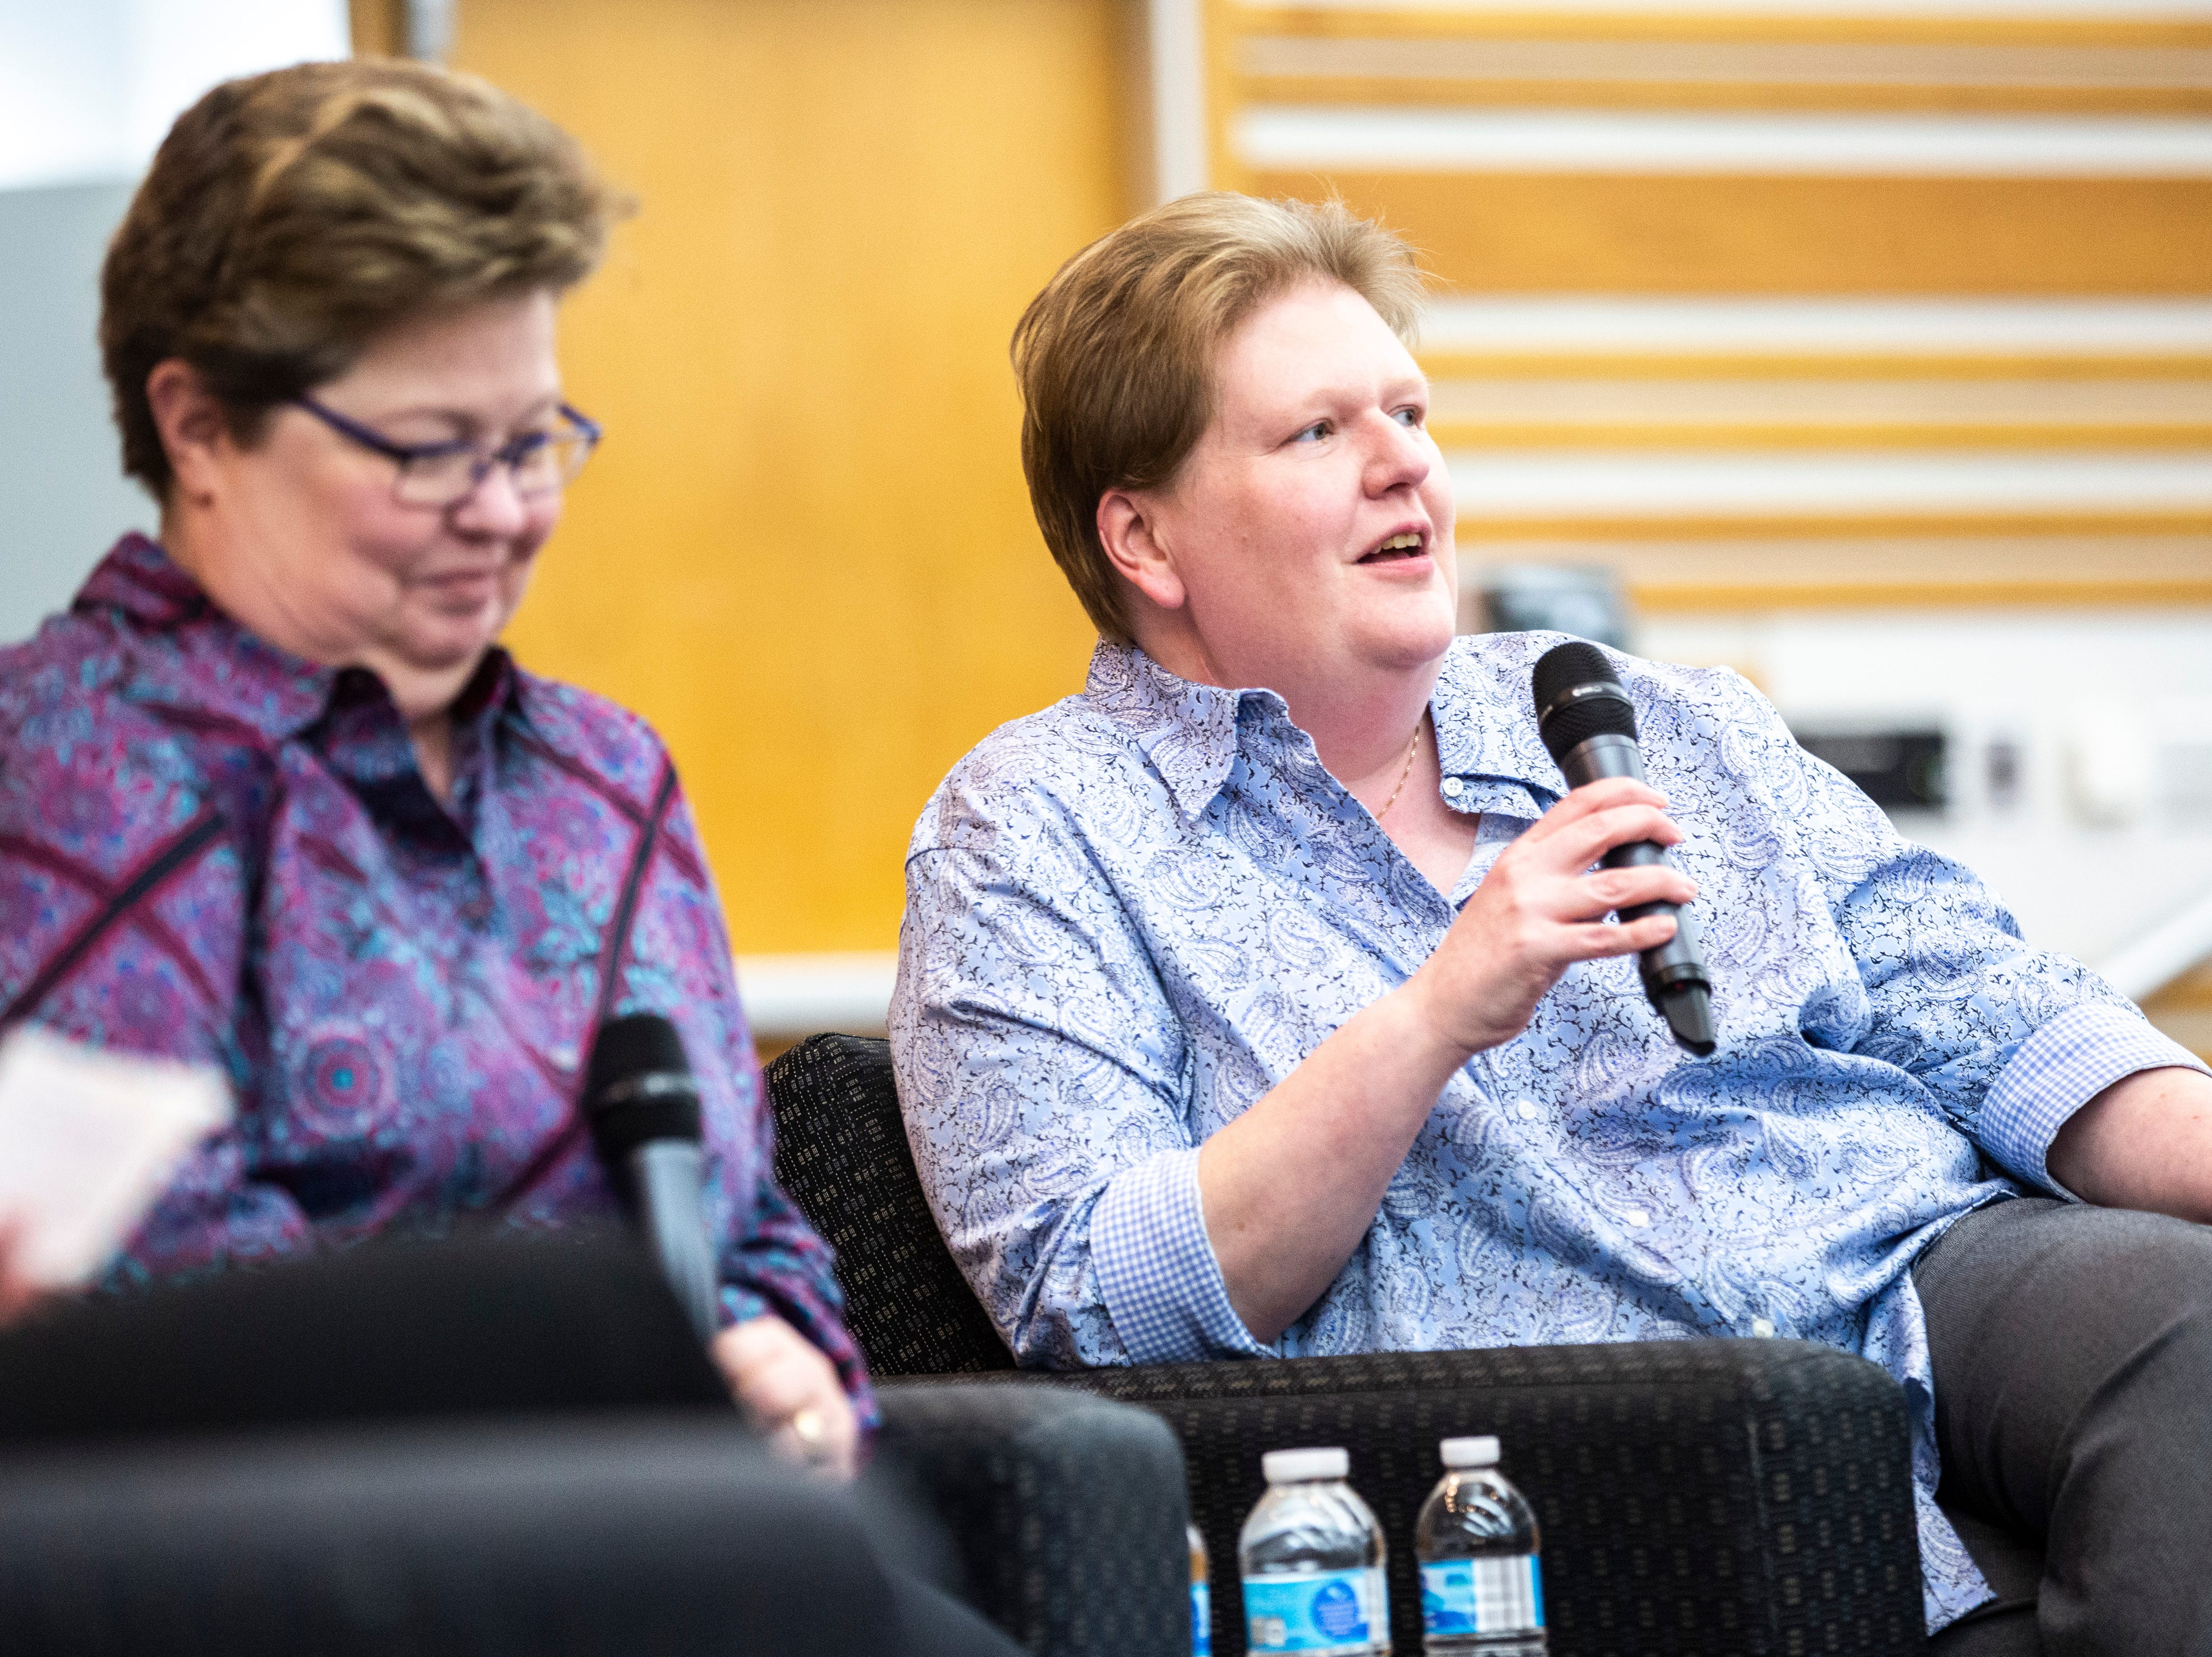 Kate Varnum, right, speaks during a panel regarding the Varnum v. Brien Iowa Supreme Court decision with her wife Trish at left, Thursday, April 18, 2019, in the Boyd Law Building on the University of Iowa campus in Iowa City, Iowa.